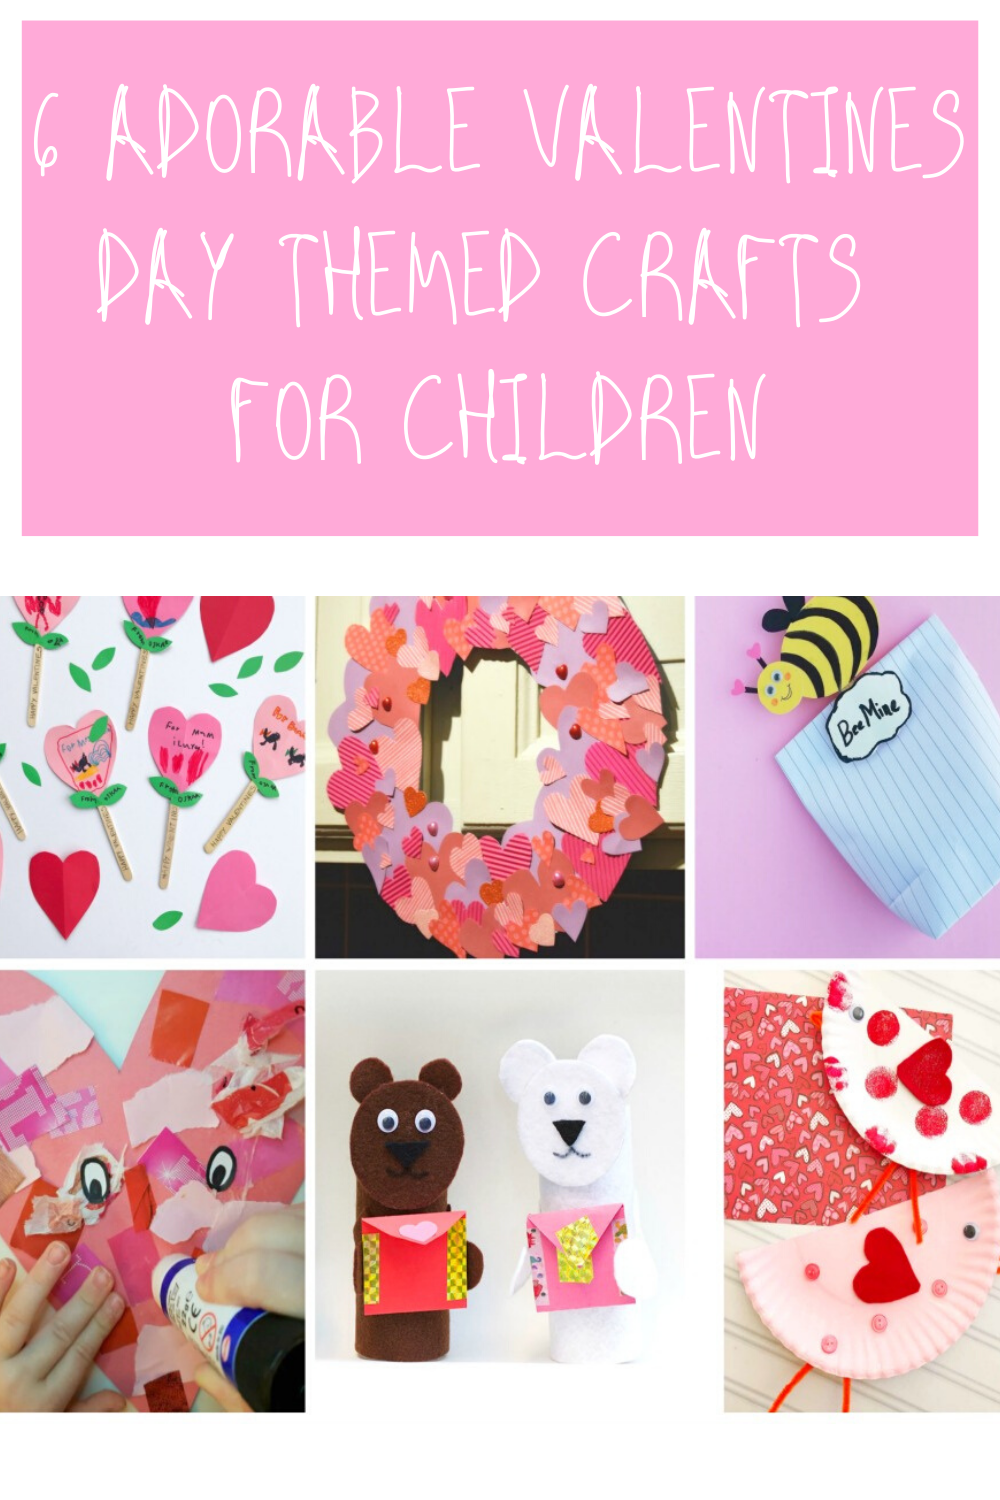 6 Adorable Valentines Day Themed Crafts For Children